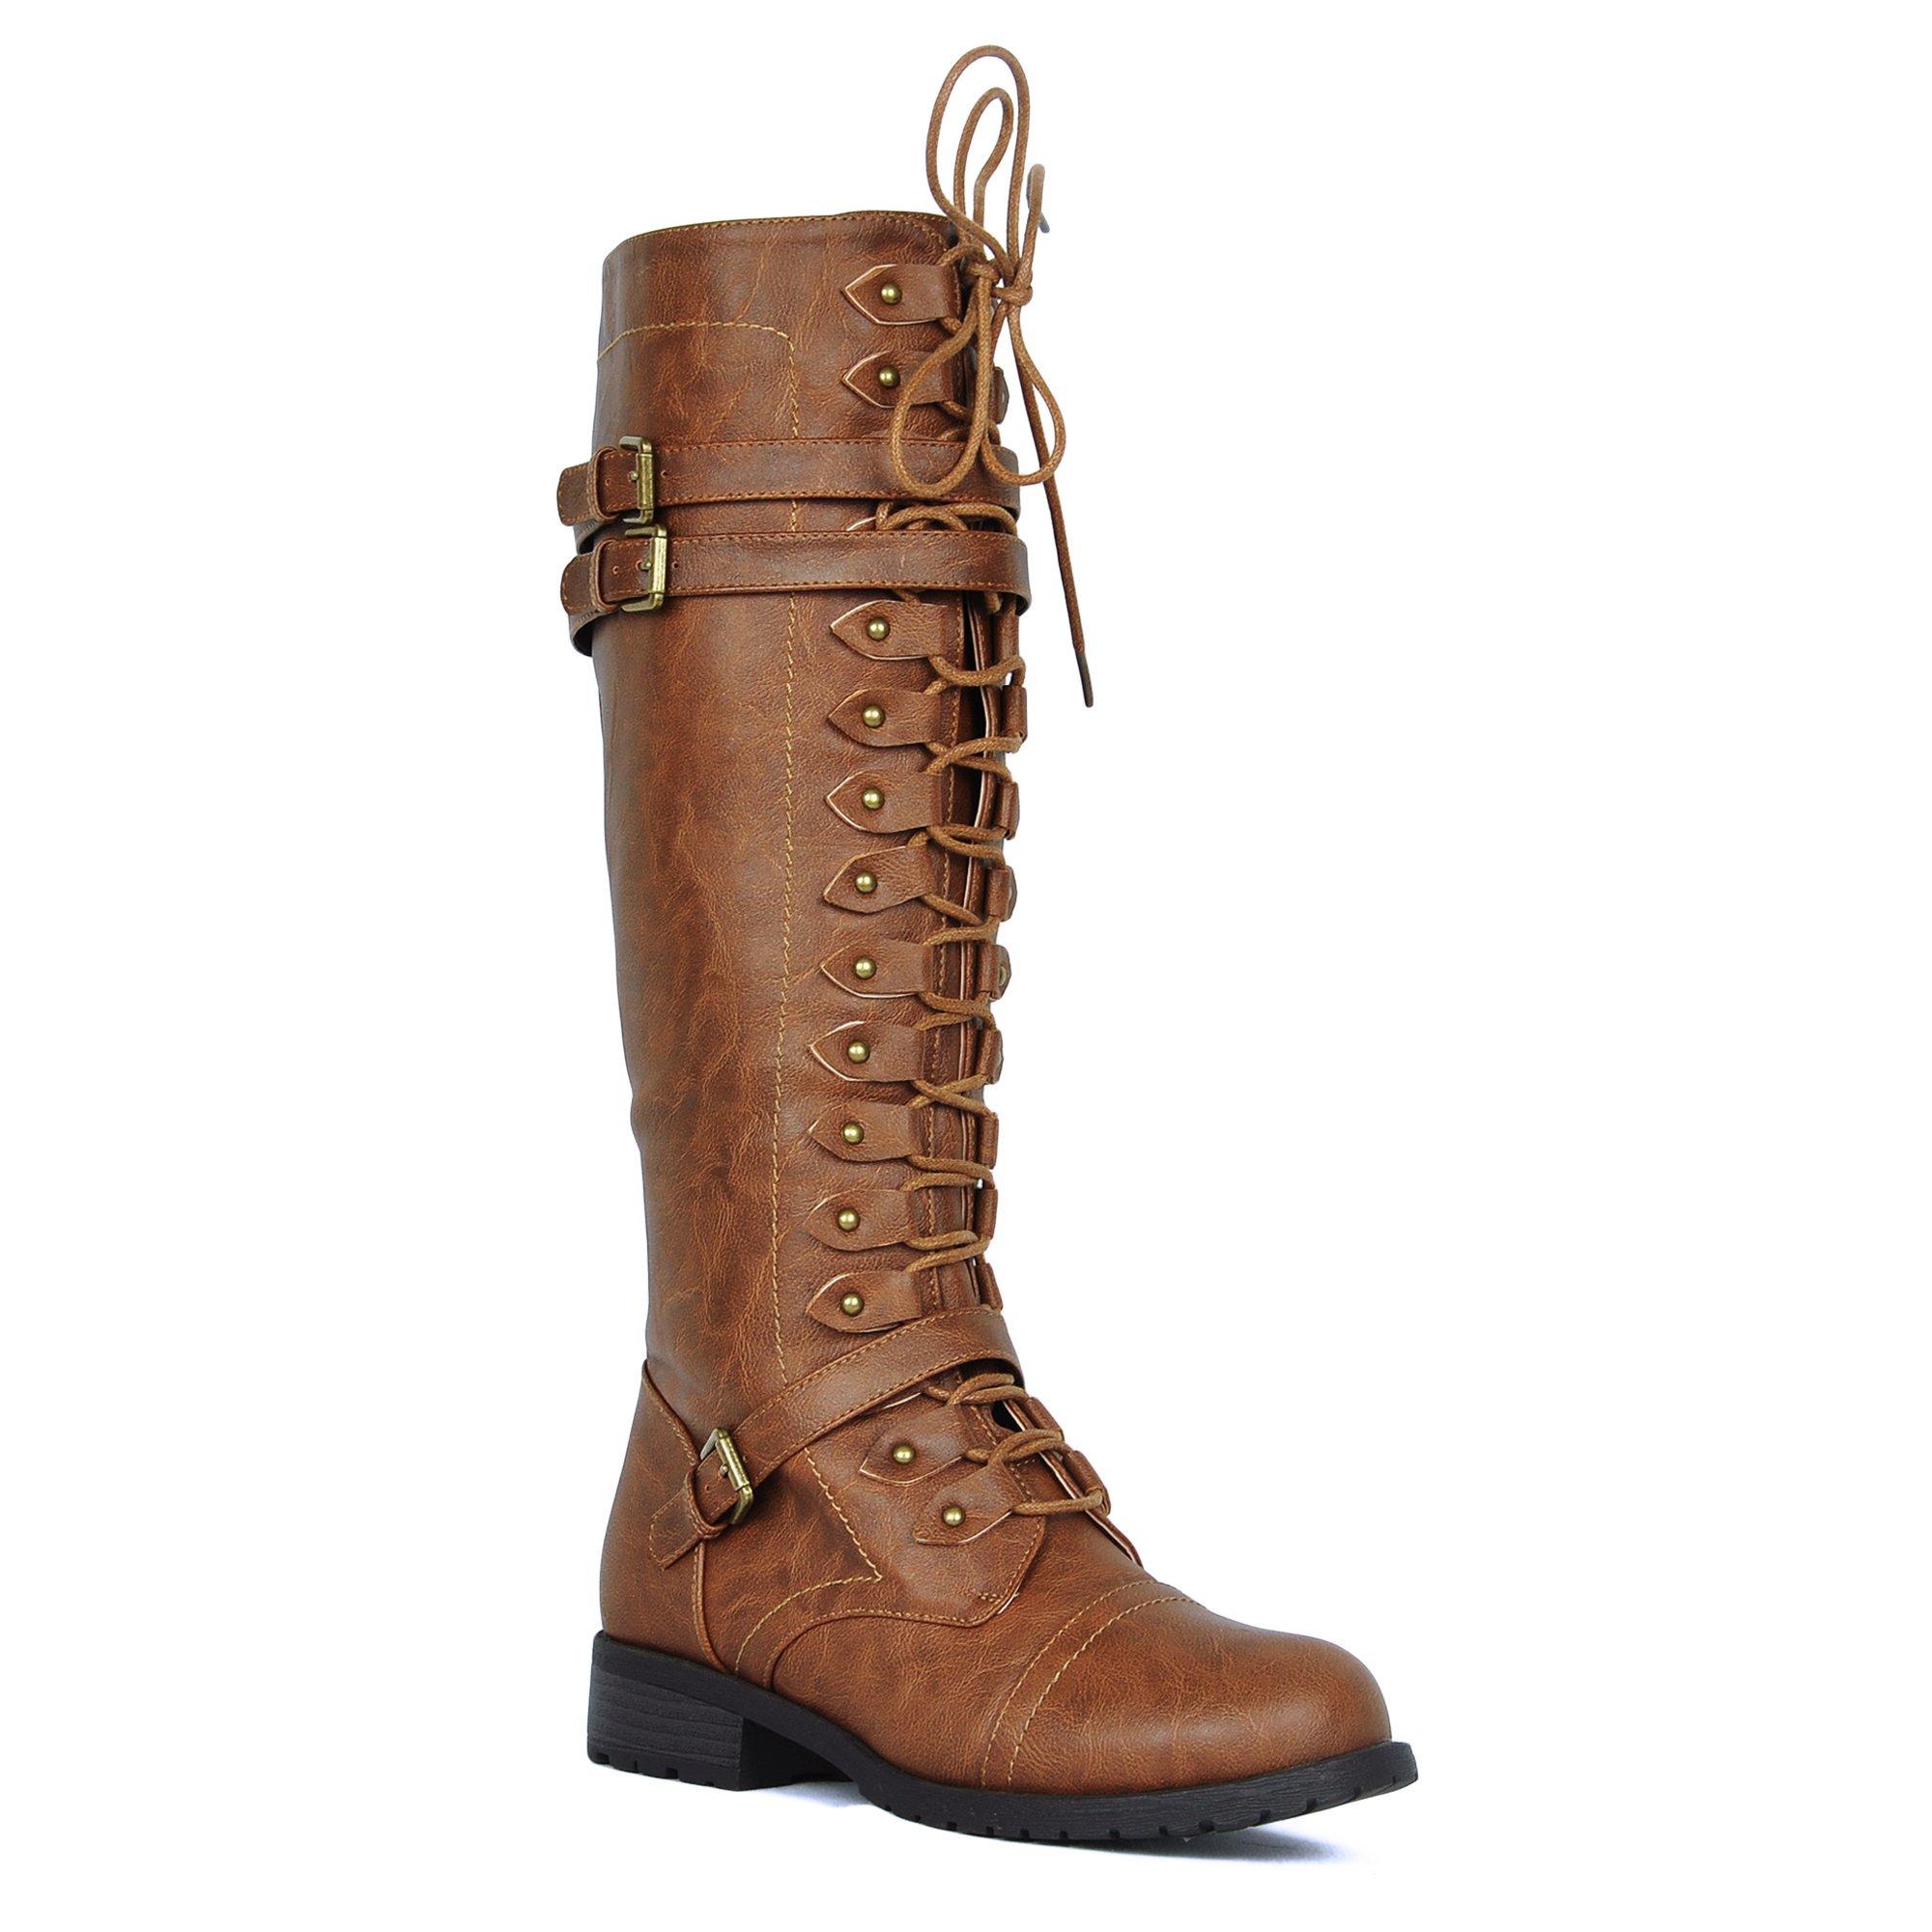 Women's Knee High Riding Boots Lace Up Buckles Winter Combat Boots Tan 7